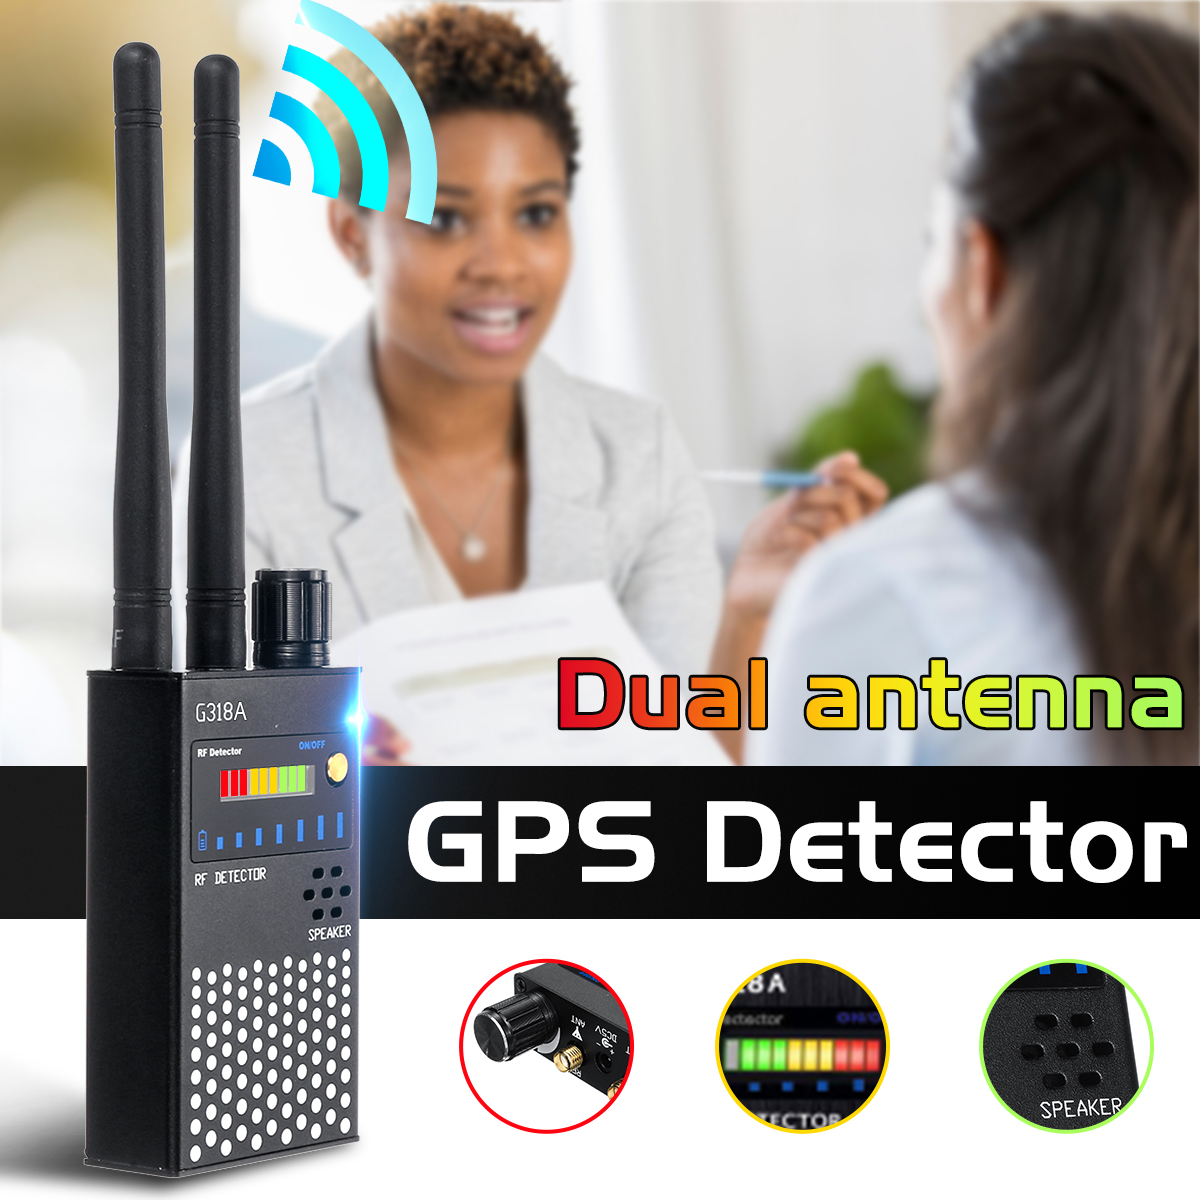 Update G318A Wireless Signal Bug Detector Anti-Spy Bug Detector GPS Location Dual Antenna Finder-Tracker Frequency Scan Securit